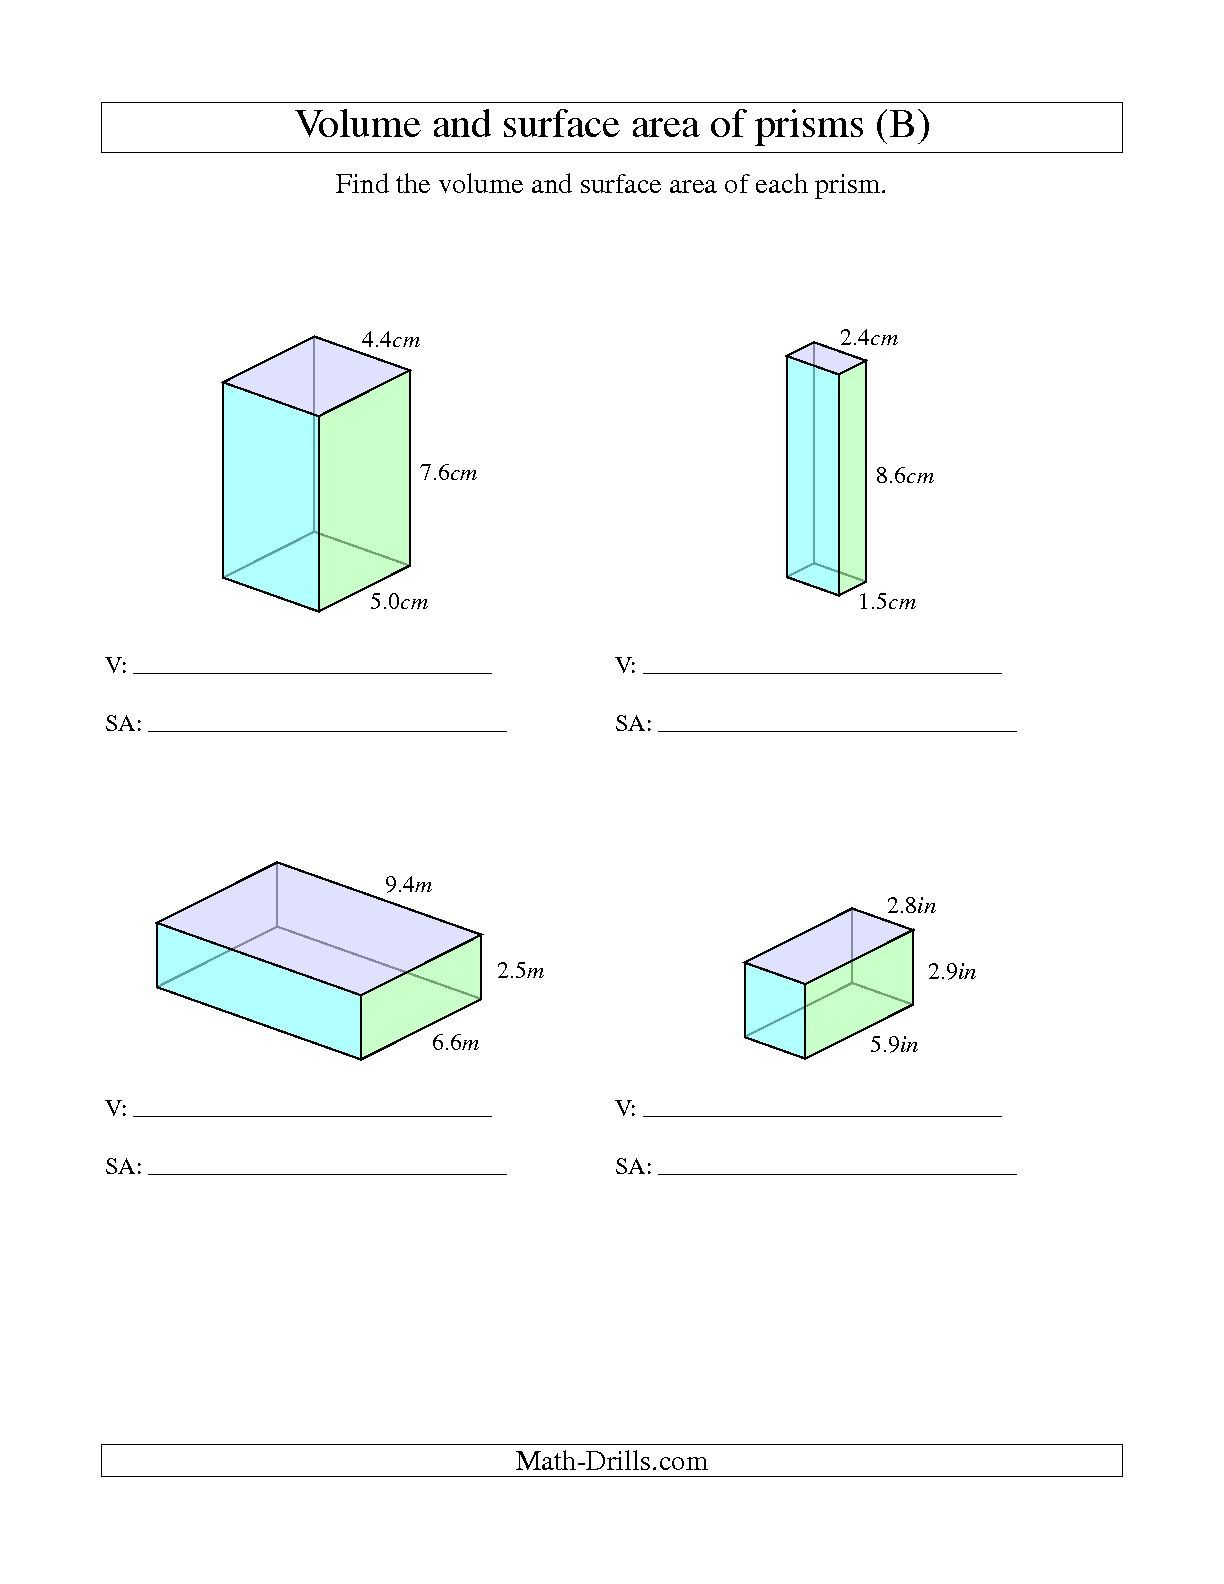 Worksheets Surface Area Of A Rectangular Prism Worksheet the volume and surface area of rectangular prisms with decimal numbers b measurement worksheet